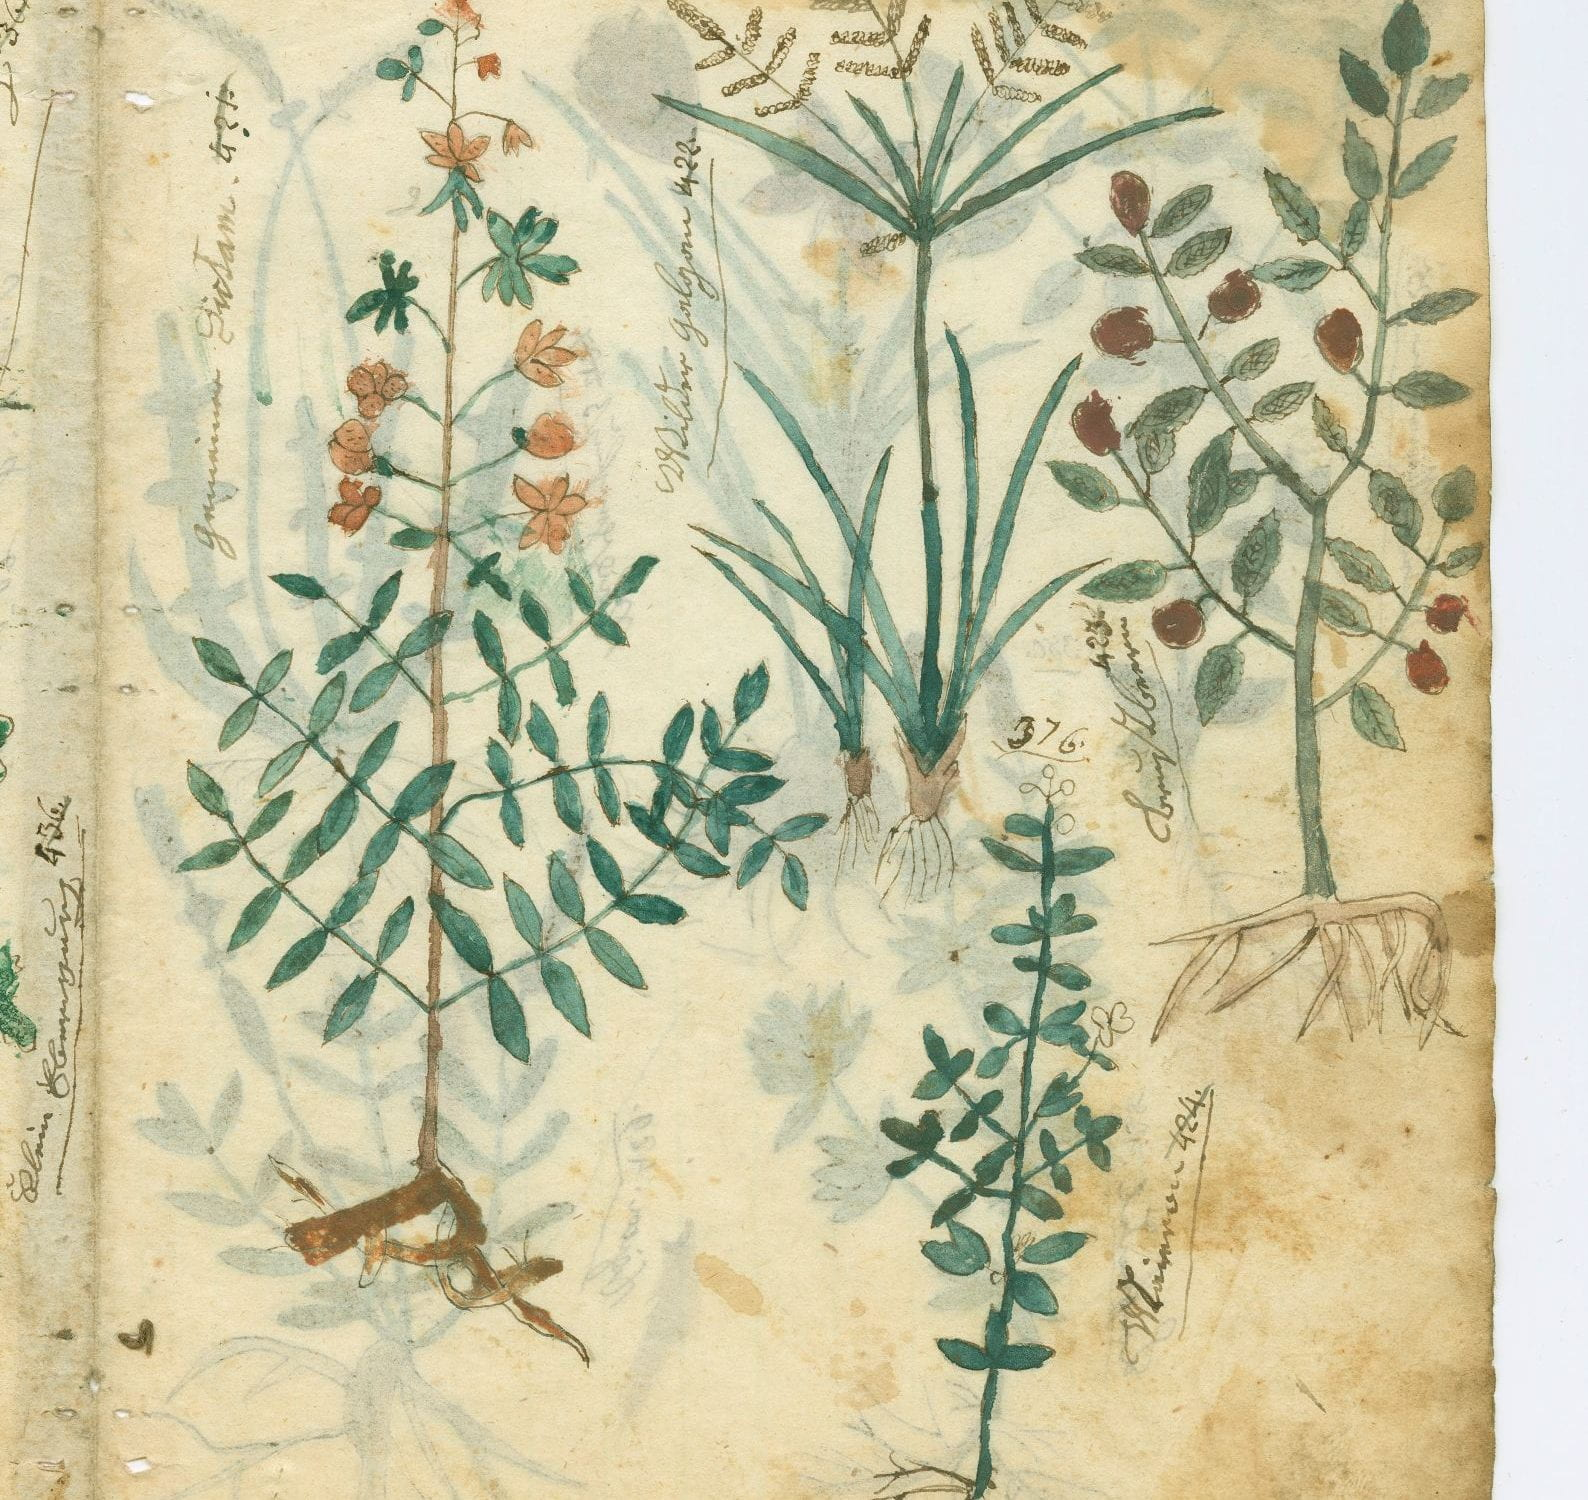 Philipp Lindemann, Herbal manuscript, circa 1835-1867